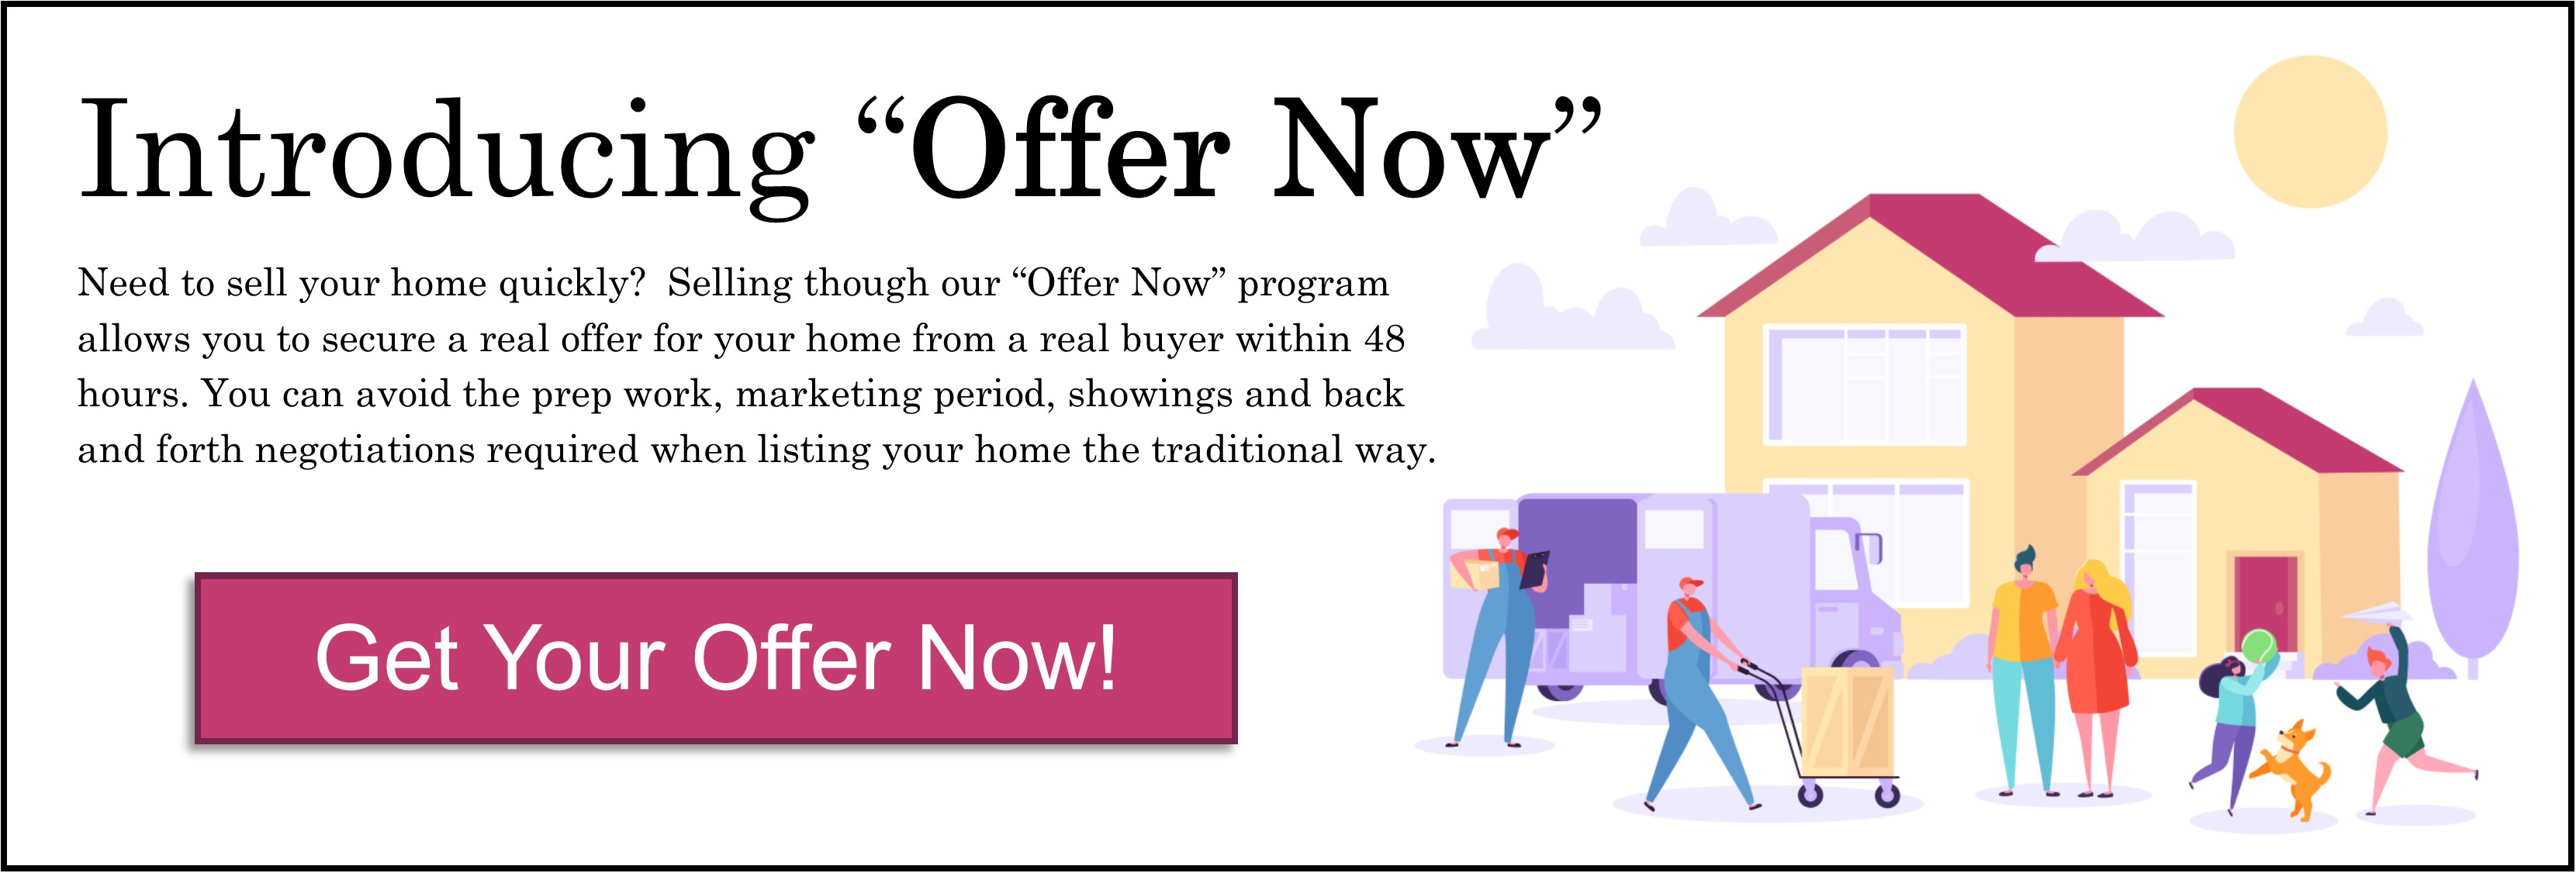 OFFER NOW GRAPHIC.jpg